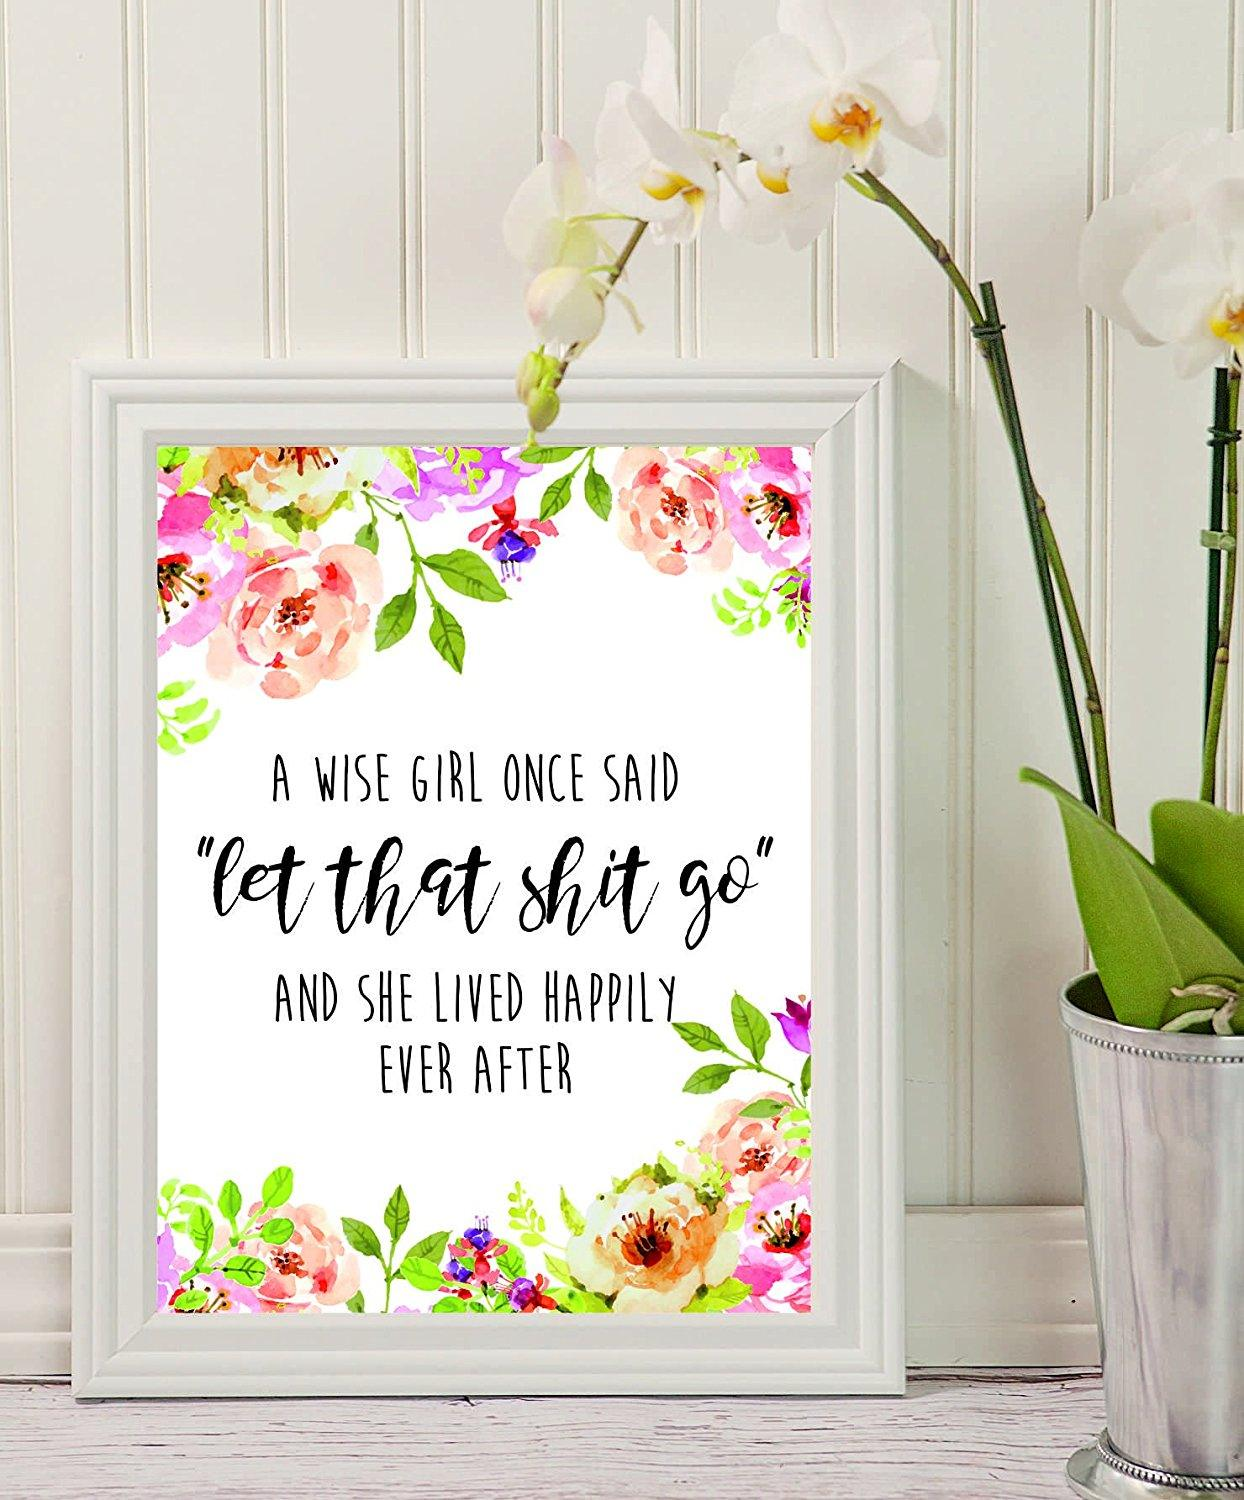 "Wise Quote - A wise girl once said ""let that shit go"", - Inspirational Quote - Quote Print - Floral Print - Printable Décor - College Dorm Room Decorations-Wall Art-funny wall decor - BOSTON CREATIVE COMPANY"